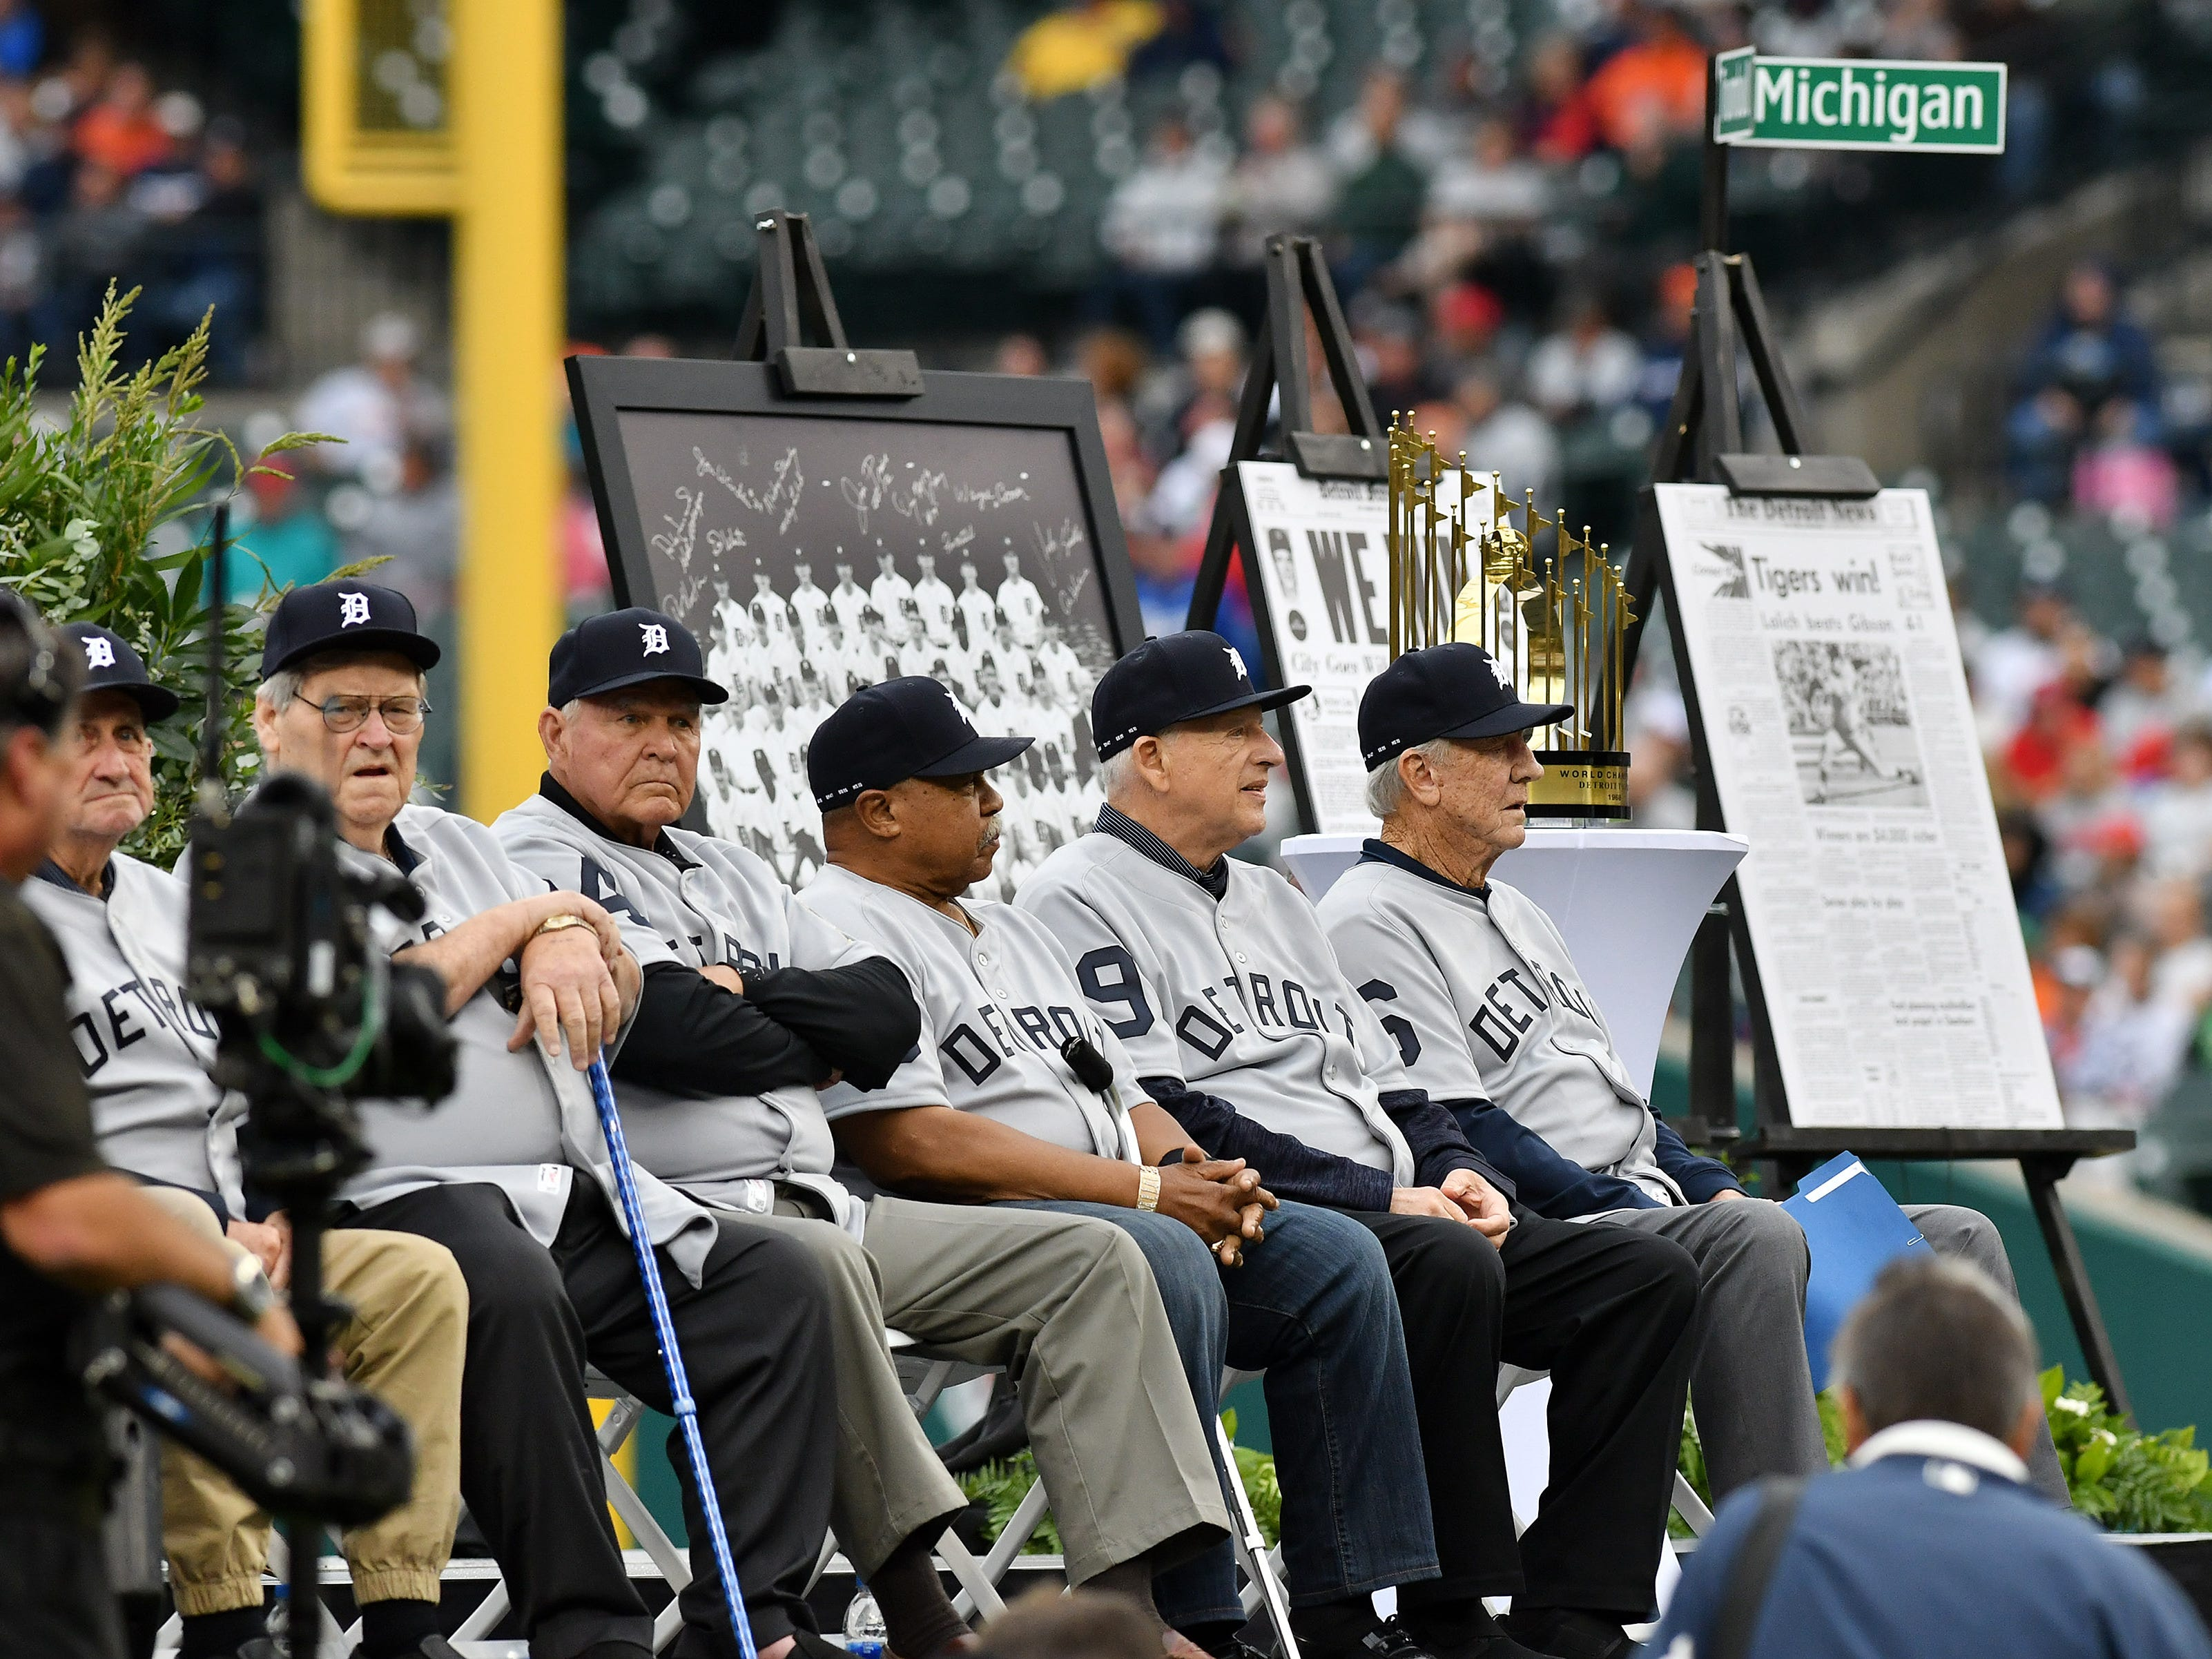 Members of the 1968 Tigers on the stage.